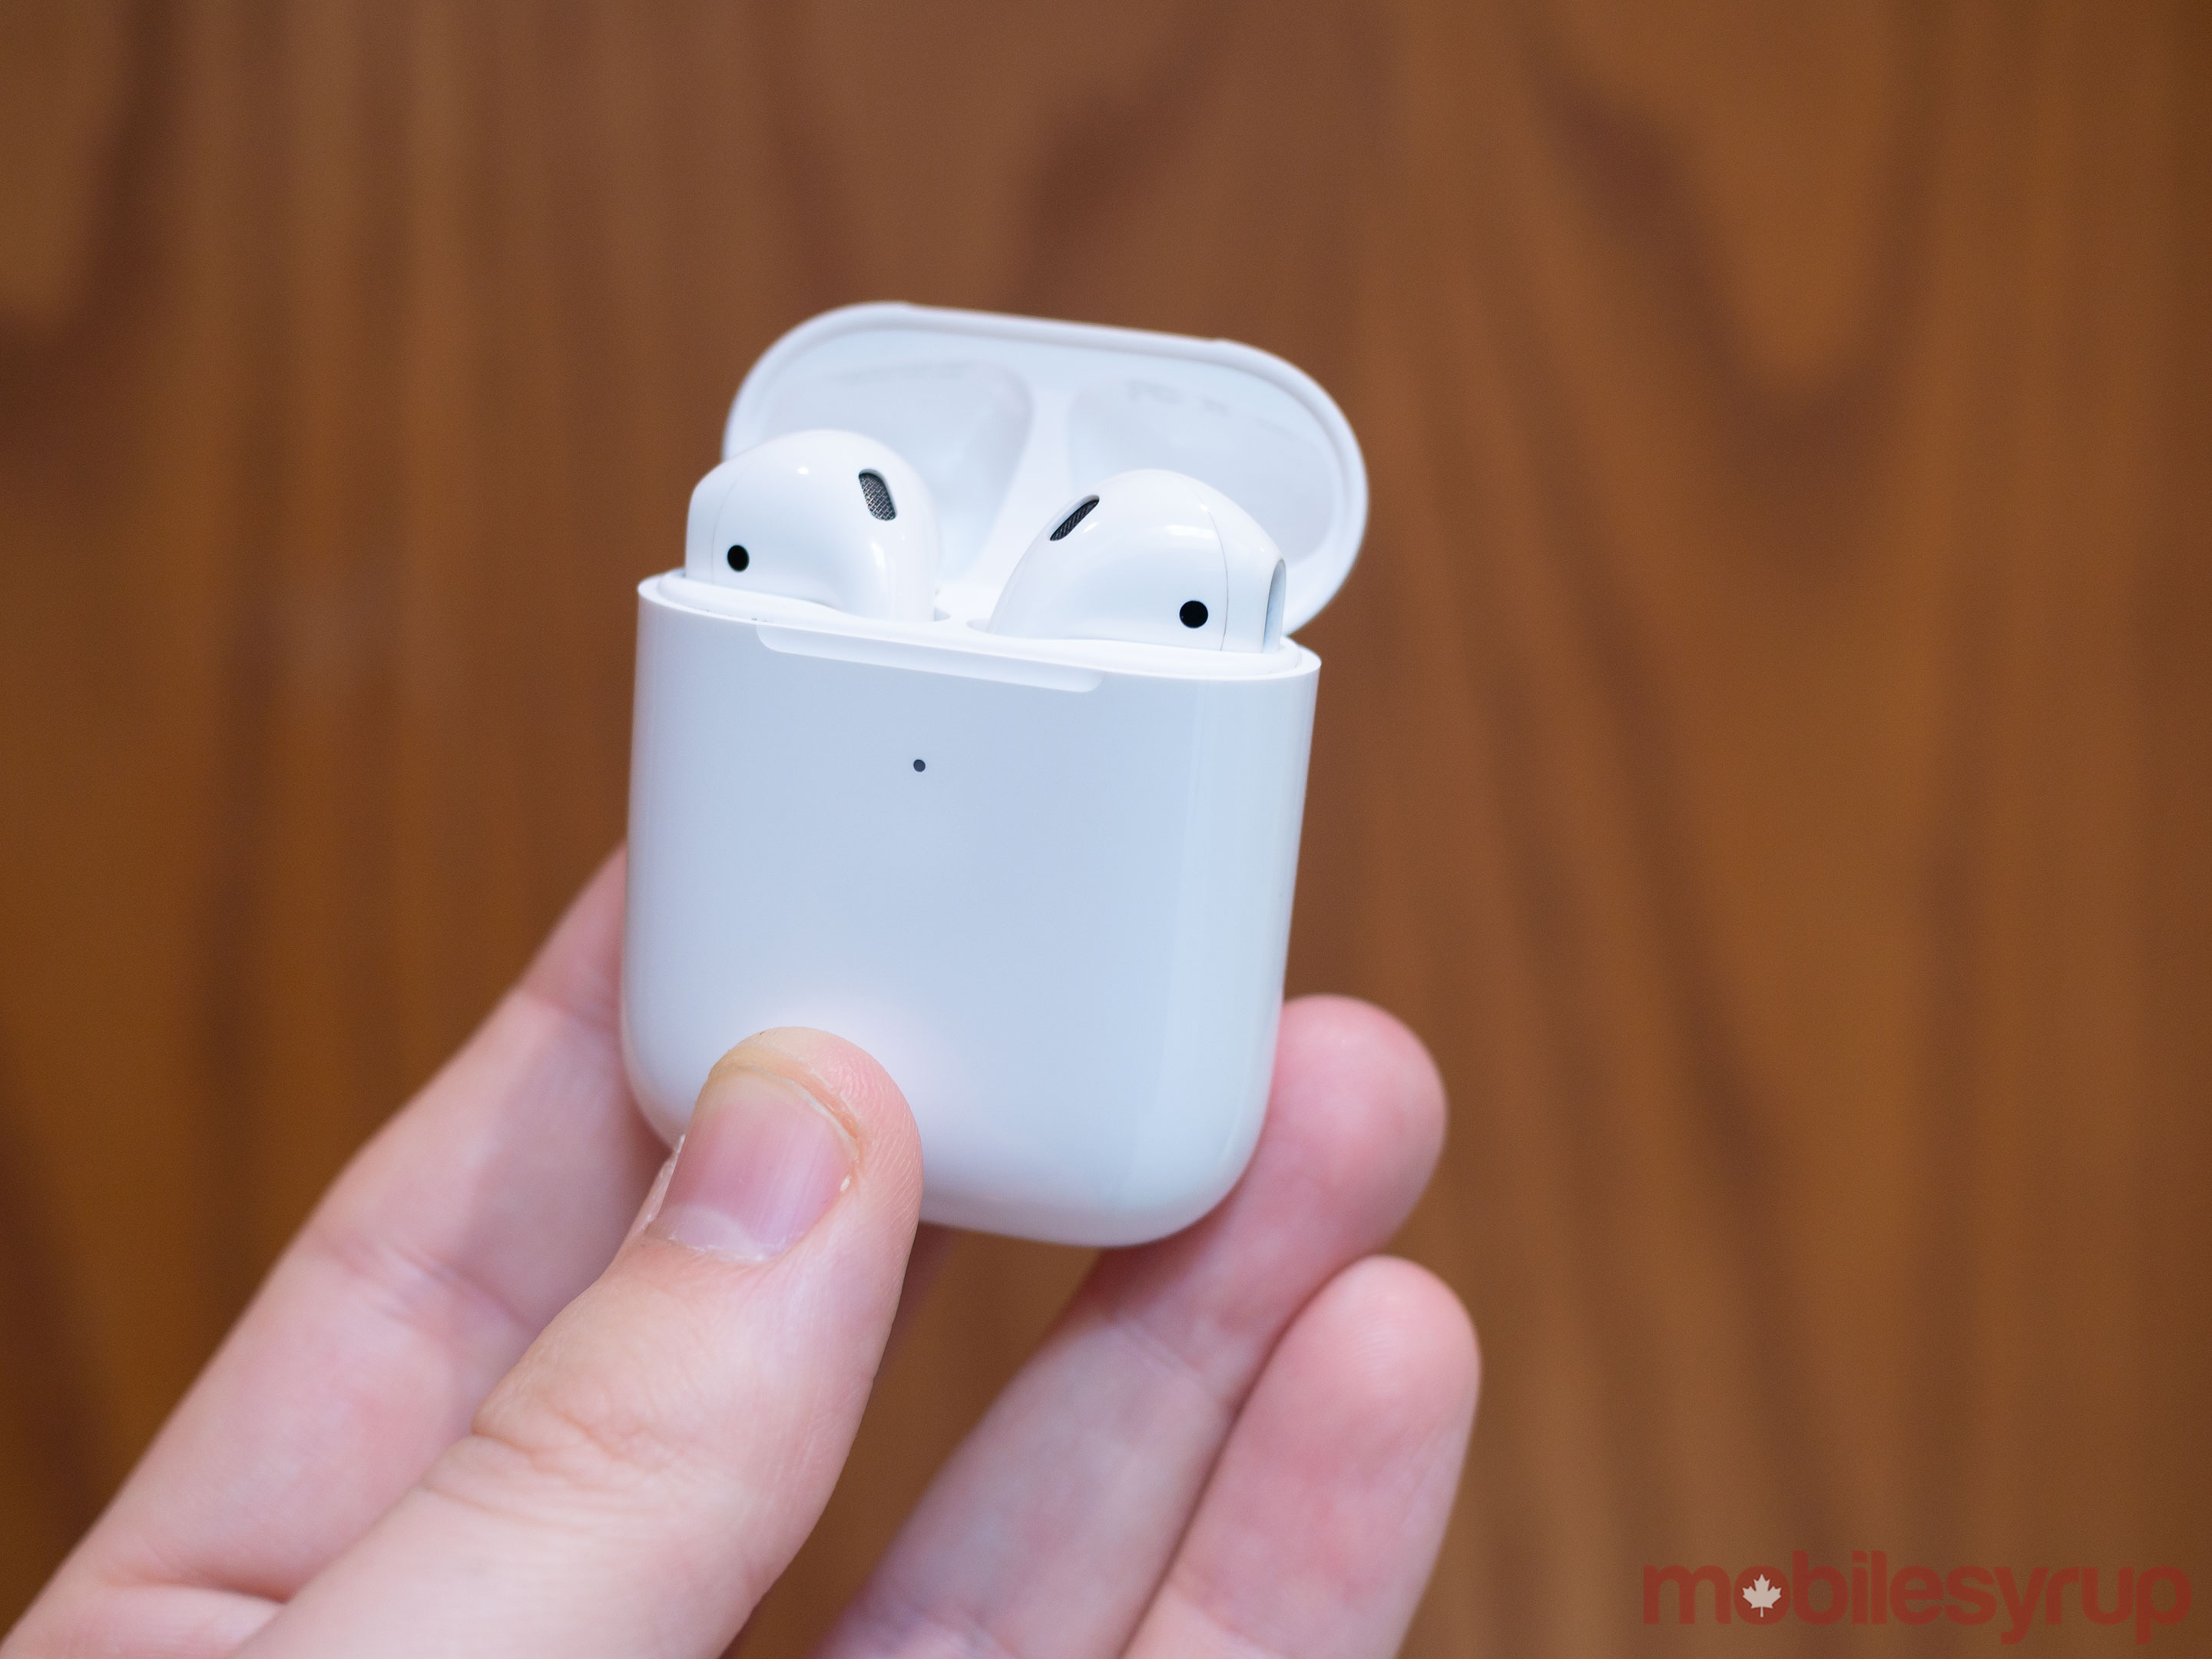 ec515775649 Apple's AirPods (2019) look identical to their predecessor. This means if  you thought AirPods were strange back in 2017 when they first launched, ...